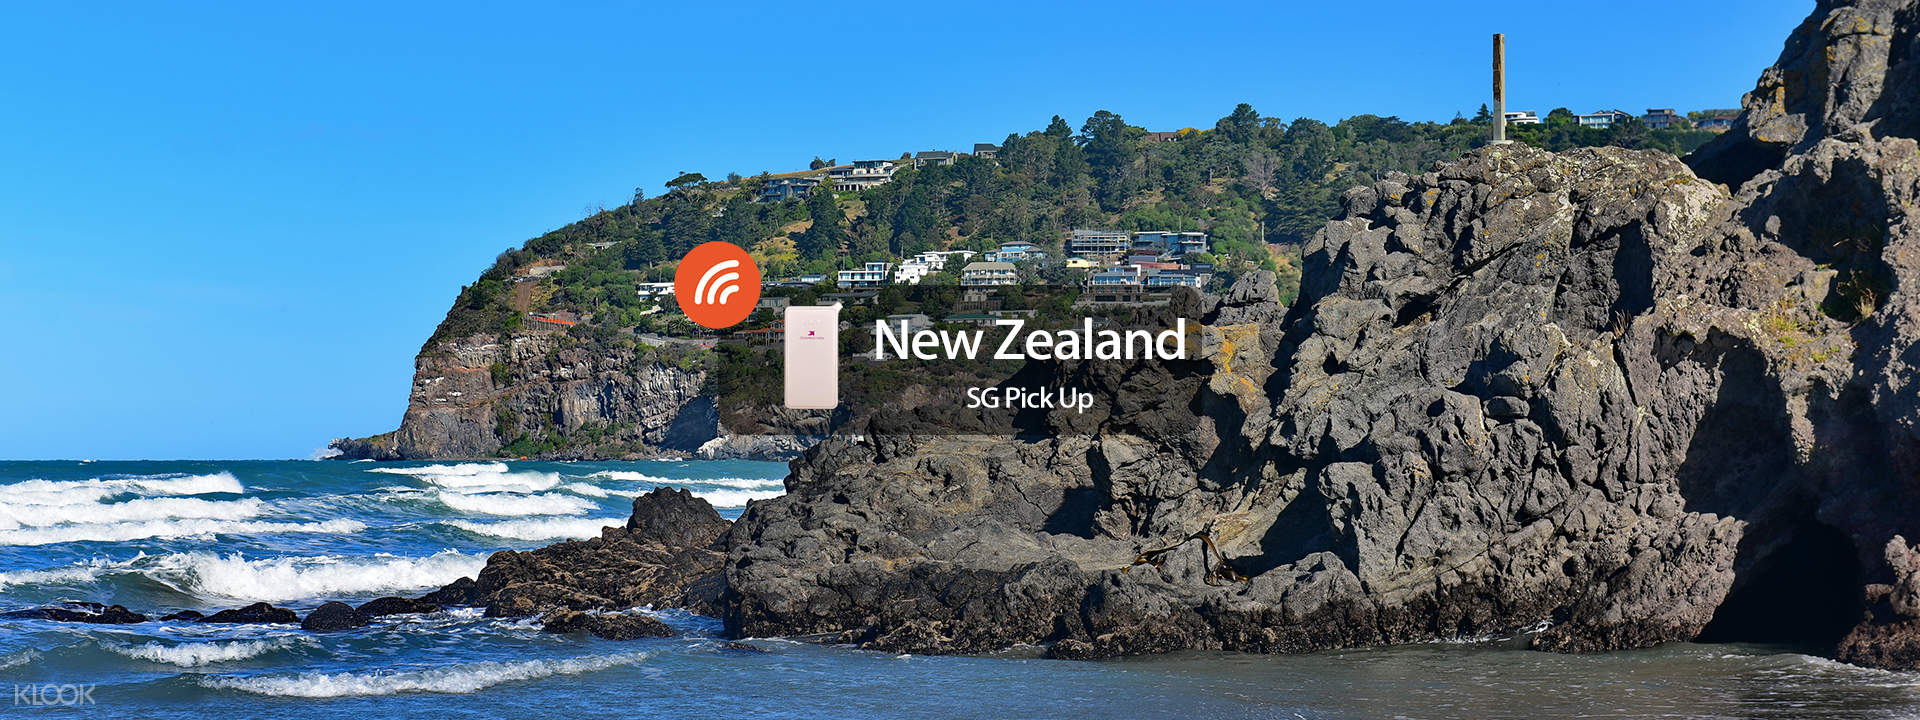 4G Wifi (SG Pick Up) for New Zealand - Klook